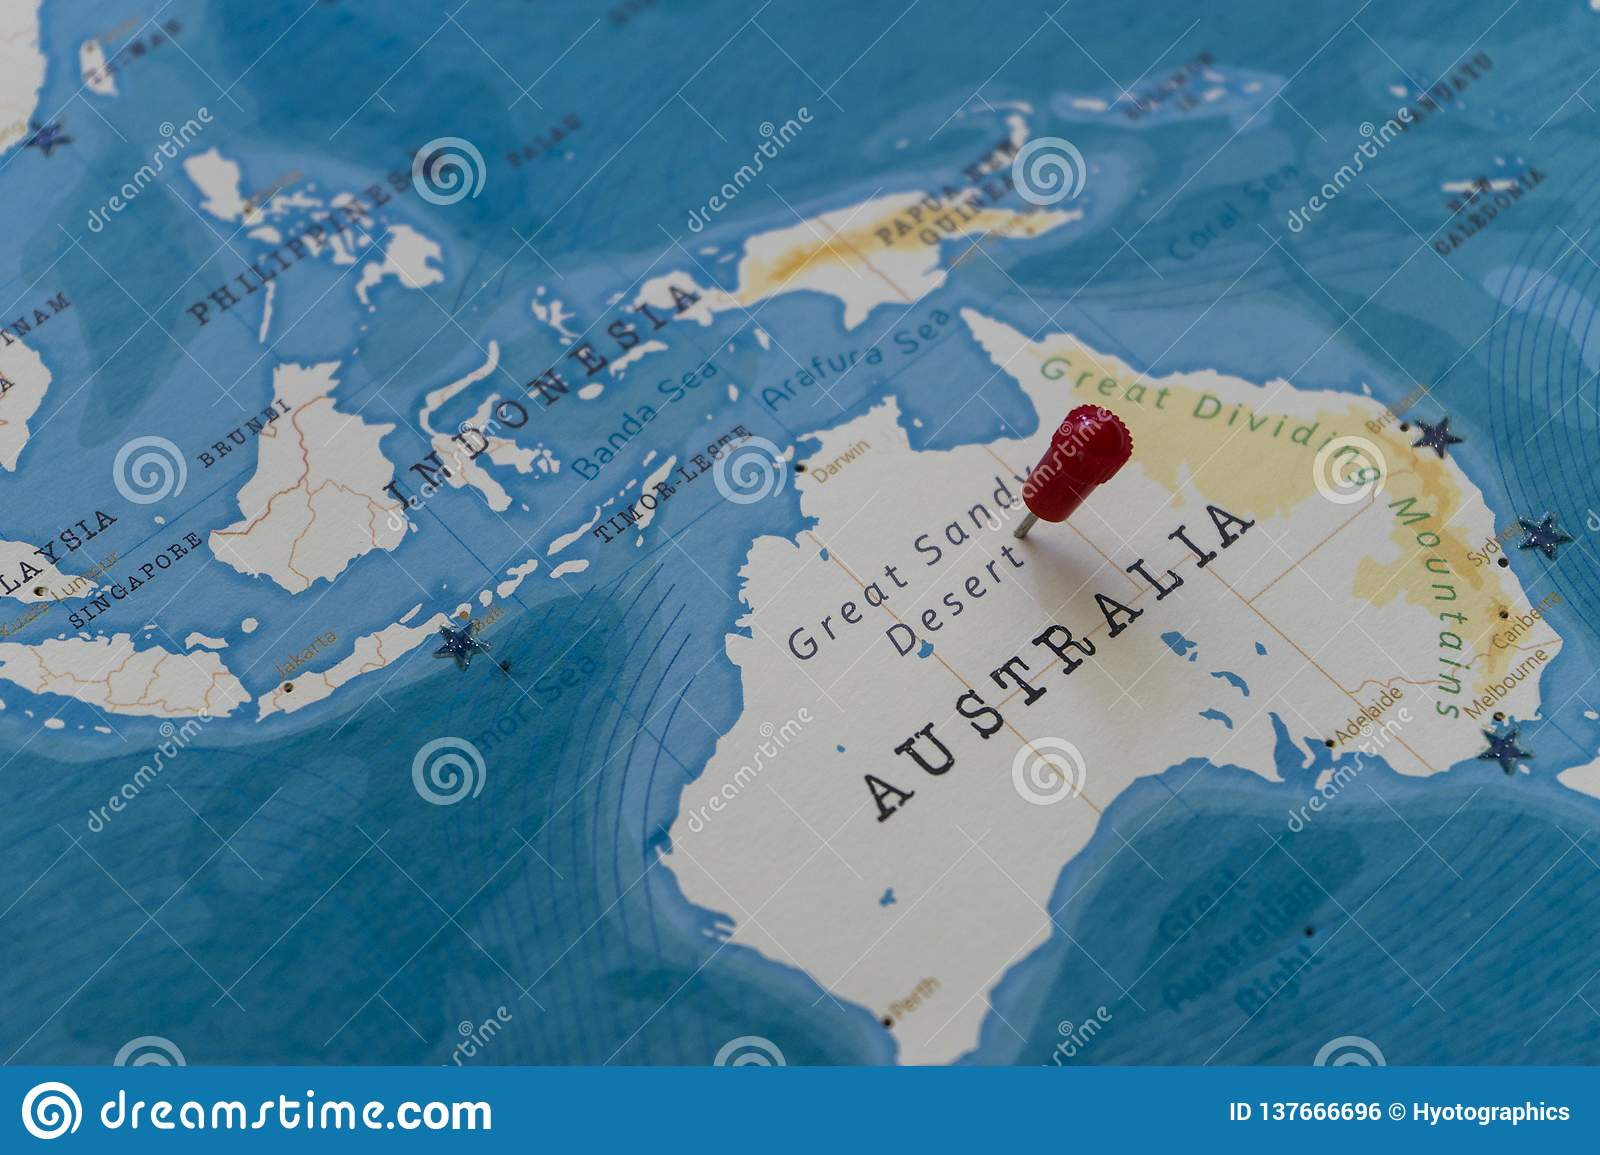 Map Of Australia Desert.A Pin On Great Sandy Desert Australia In The World Map Stock Photo